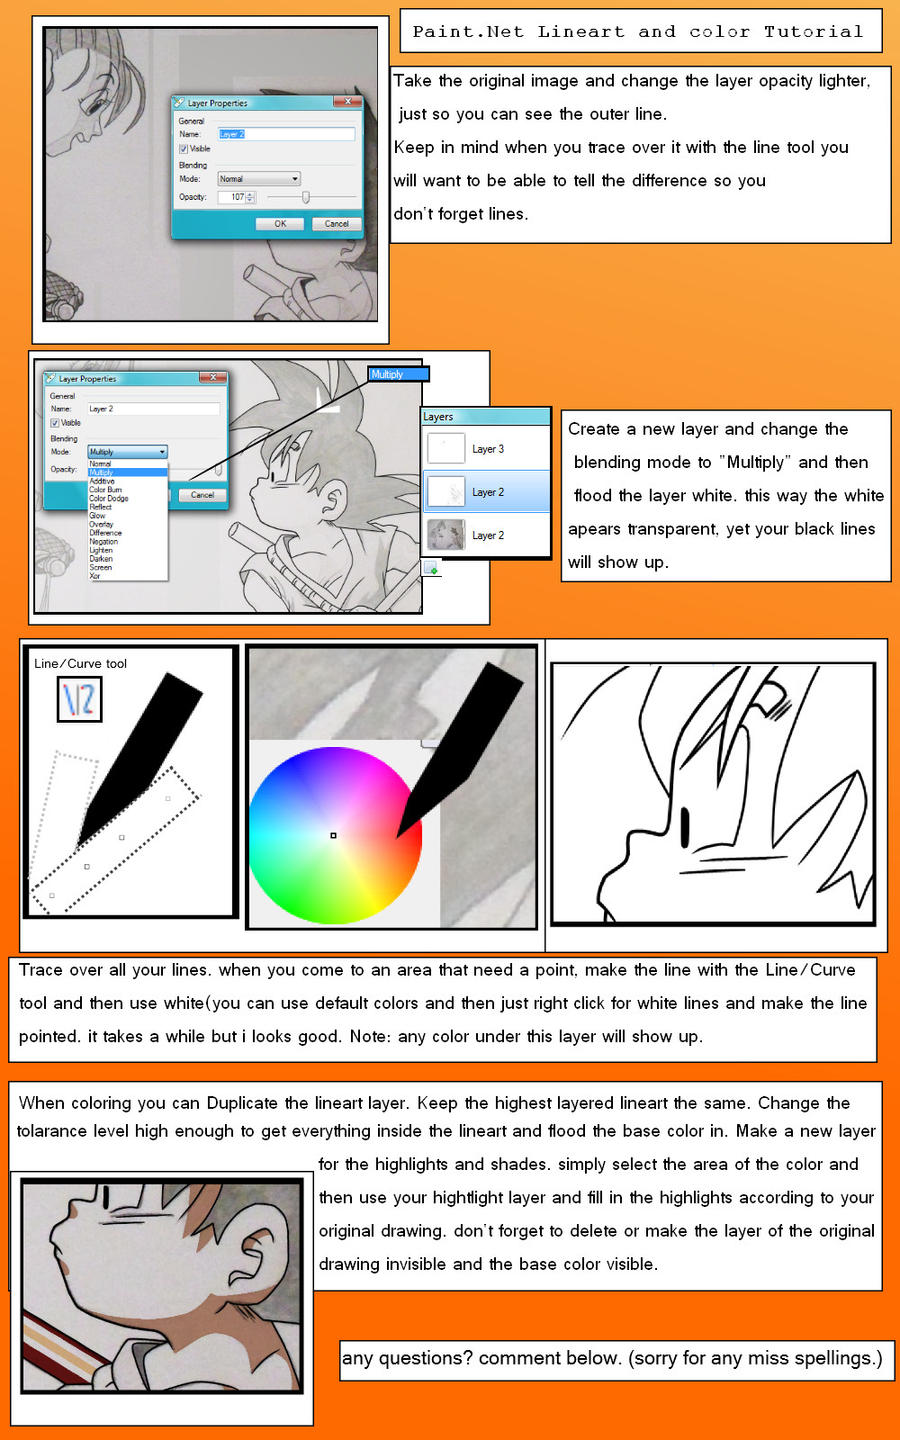 Paint lineart tutorial by ruokdbz98 on deviantart paint lineart tutorial by ruokdbz98 baditri Image collections